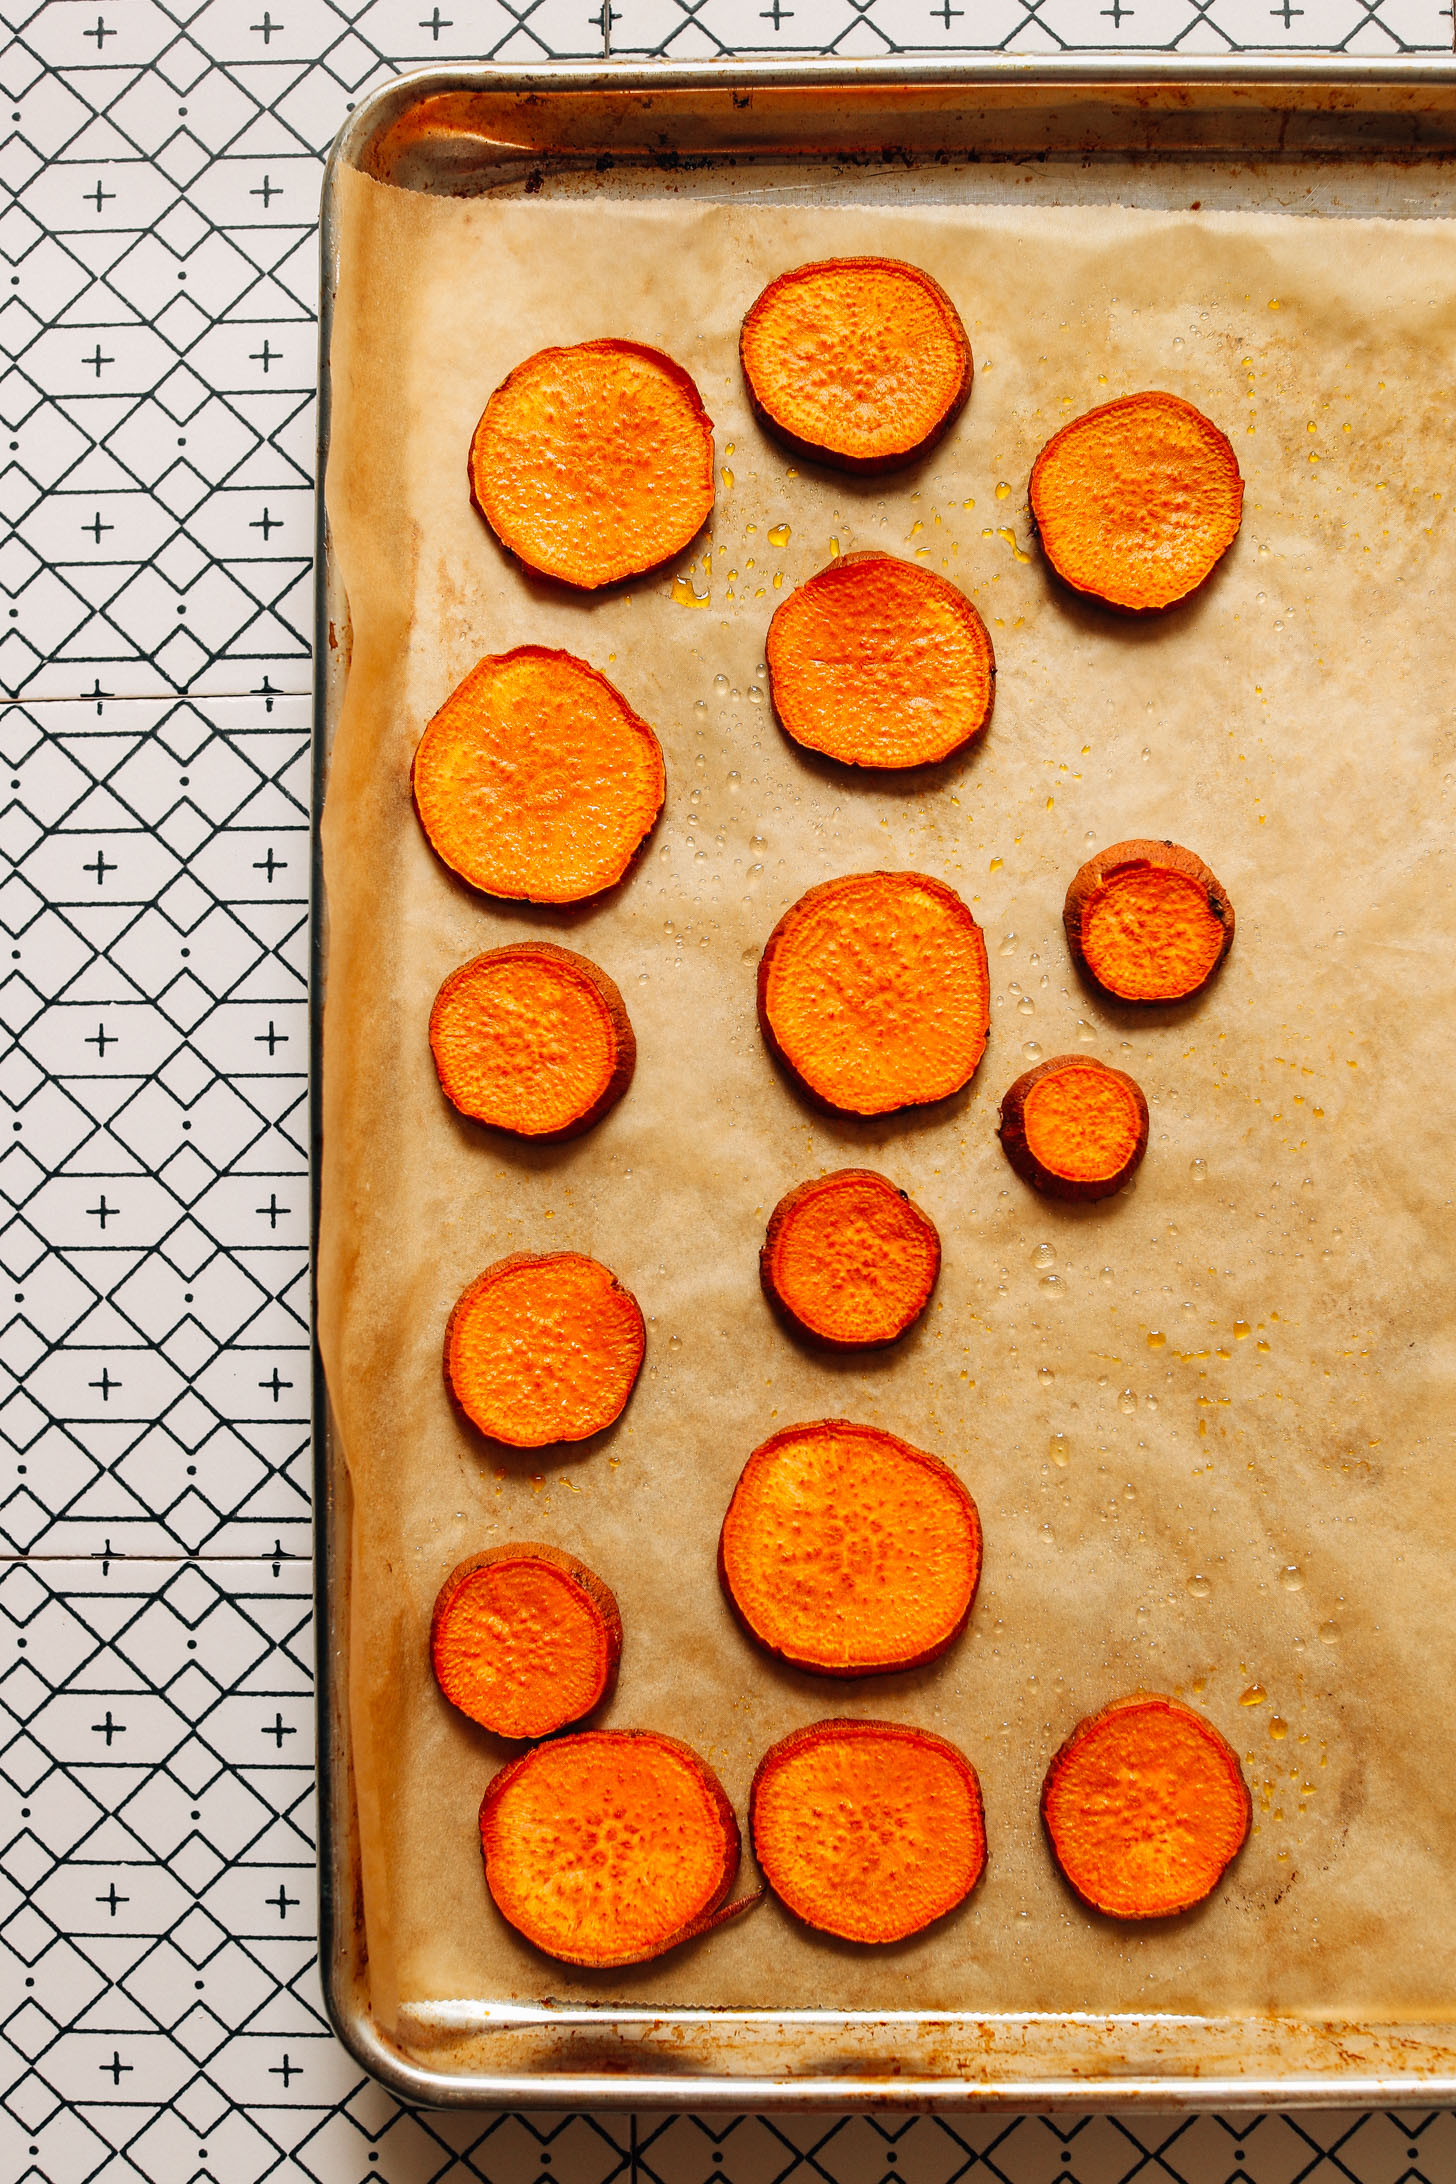 Parchment-lined baking sheet of freshly roasted sweet potato rounds for making Gado Gado